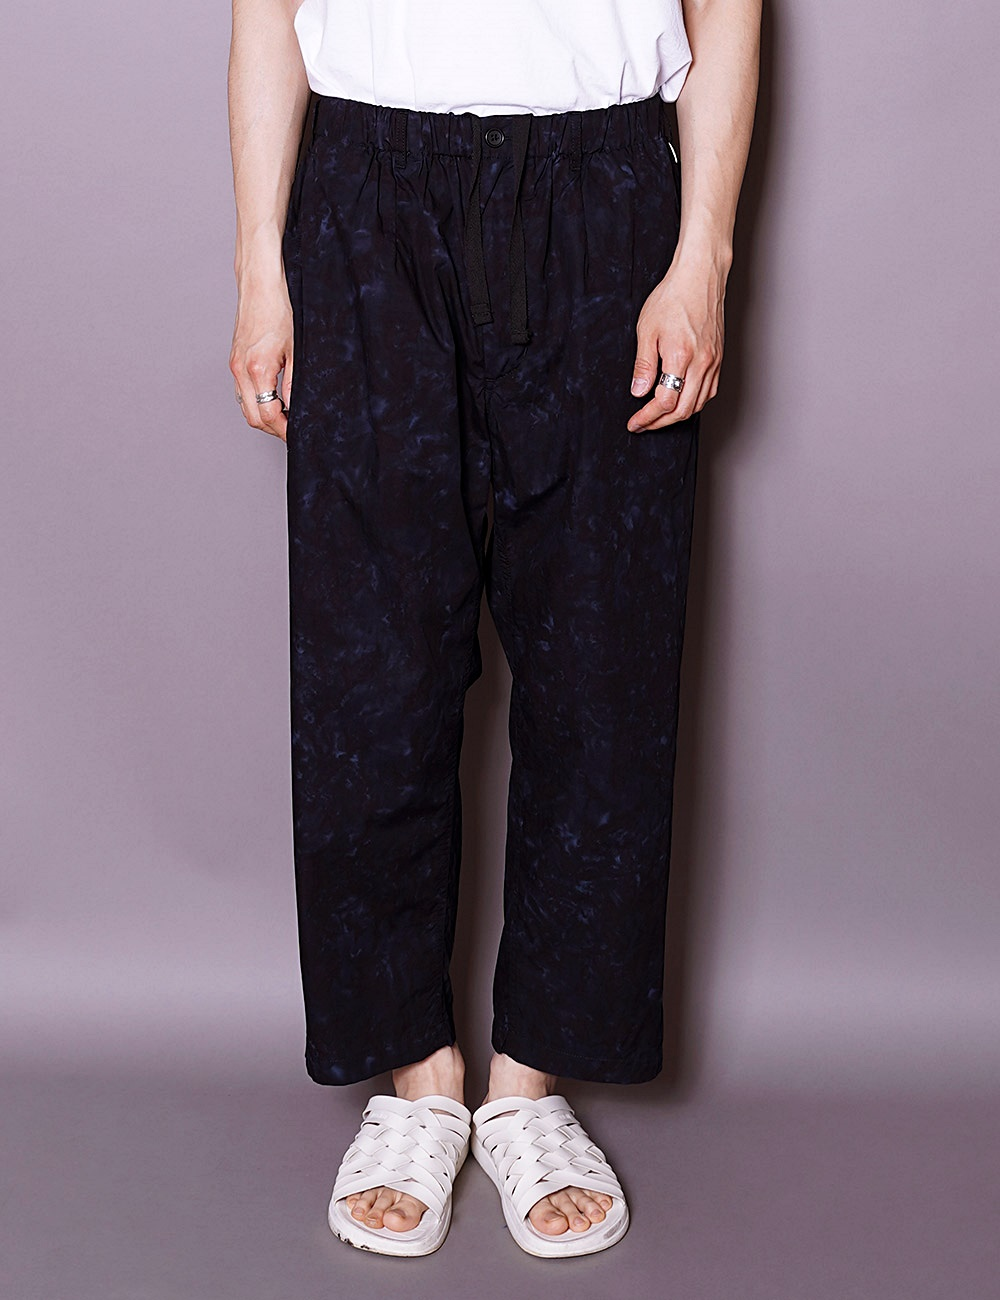 RANDT : STUDIO PANTS (NAVY/BLACK)